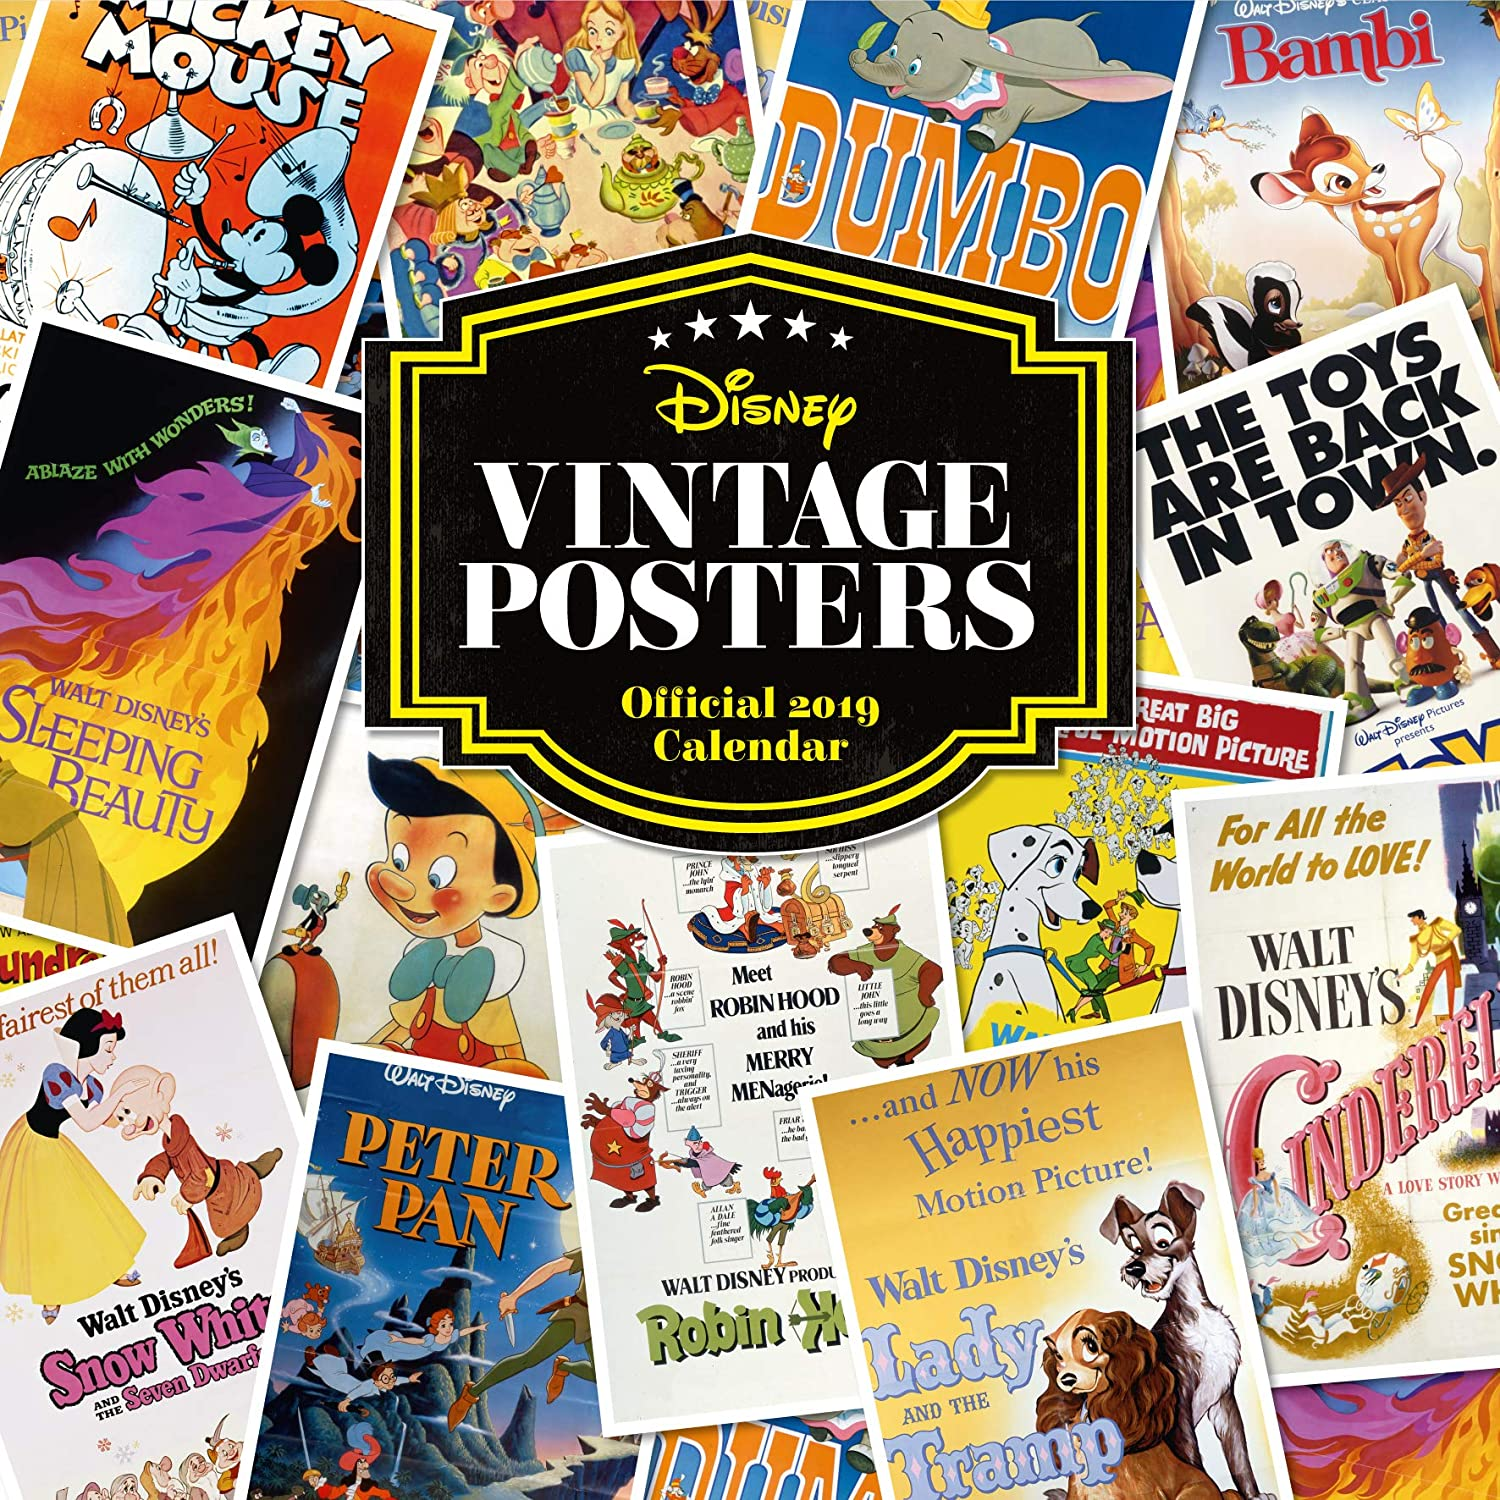 Disney Vintage Posters Official 2019 price Max 58% OFF Square - Calendar Wall